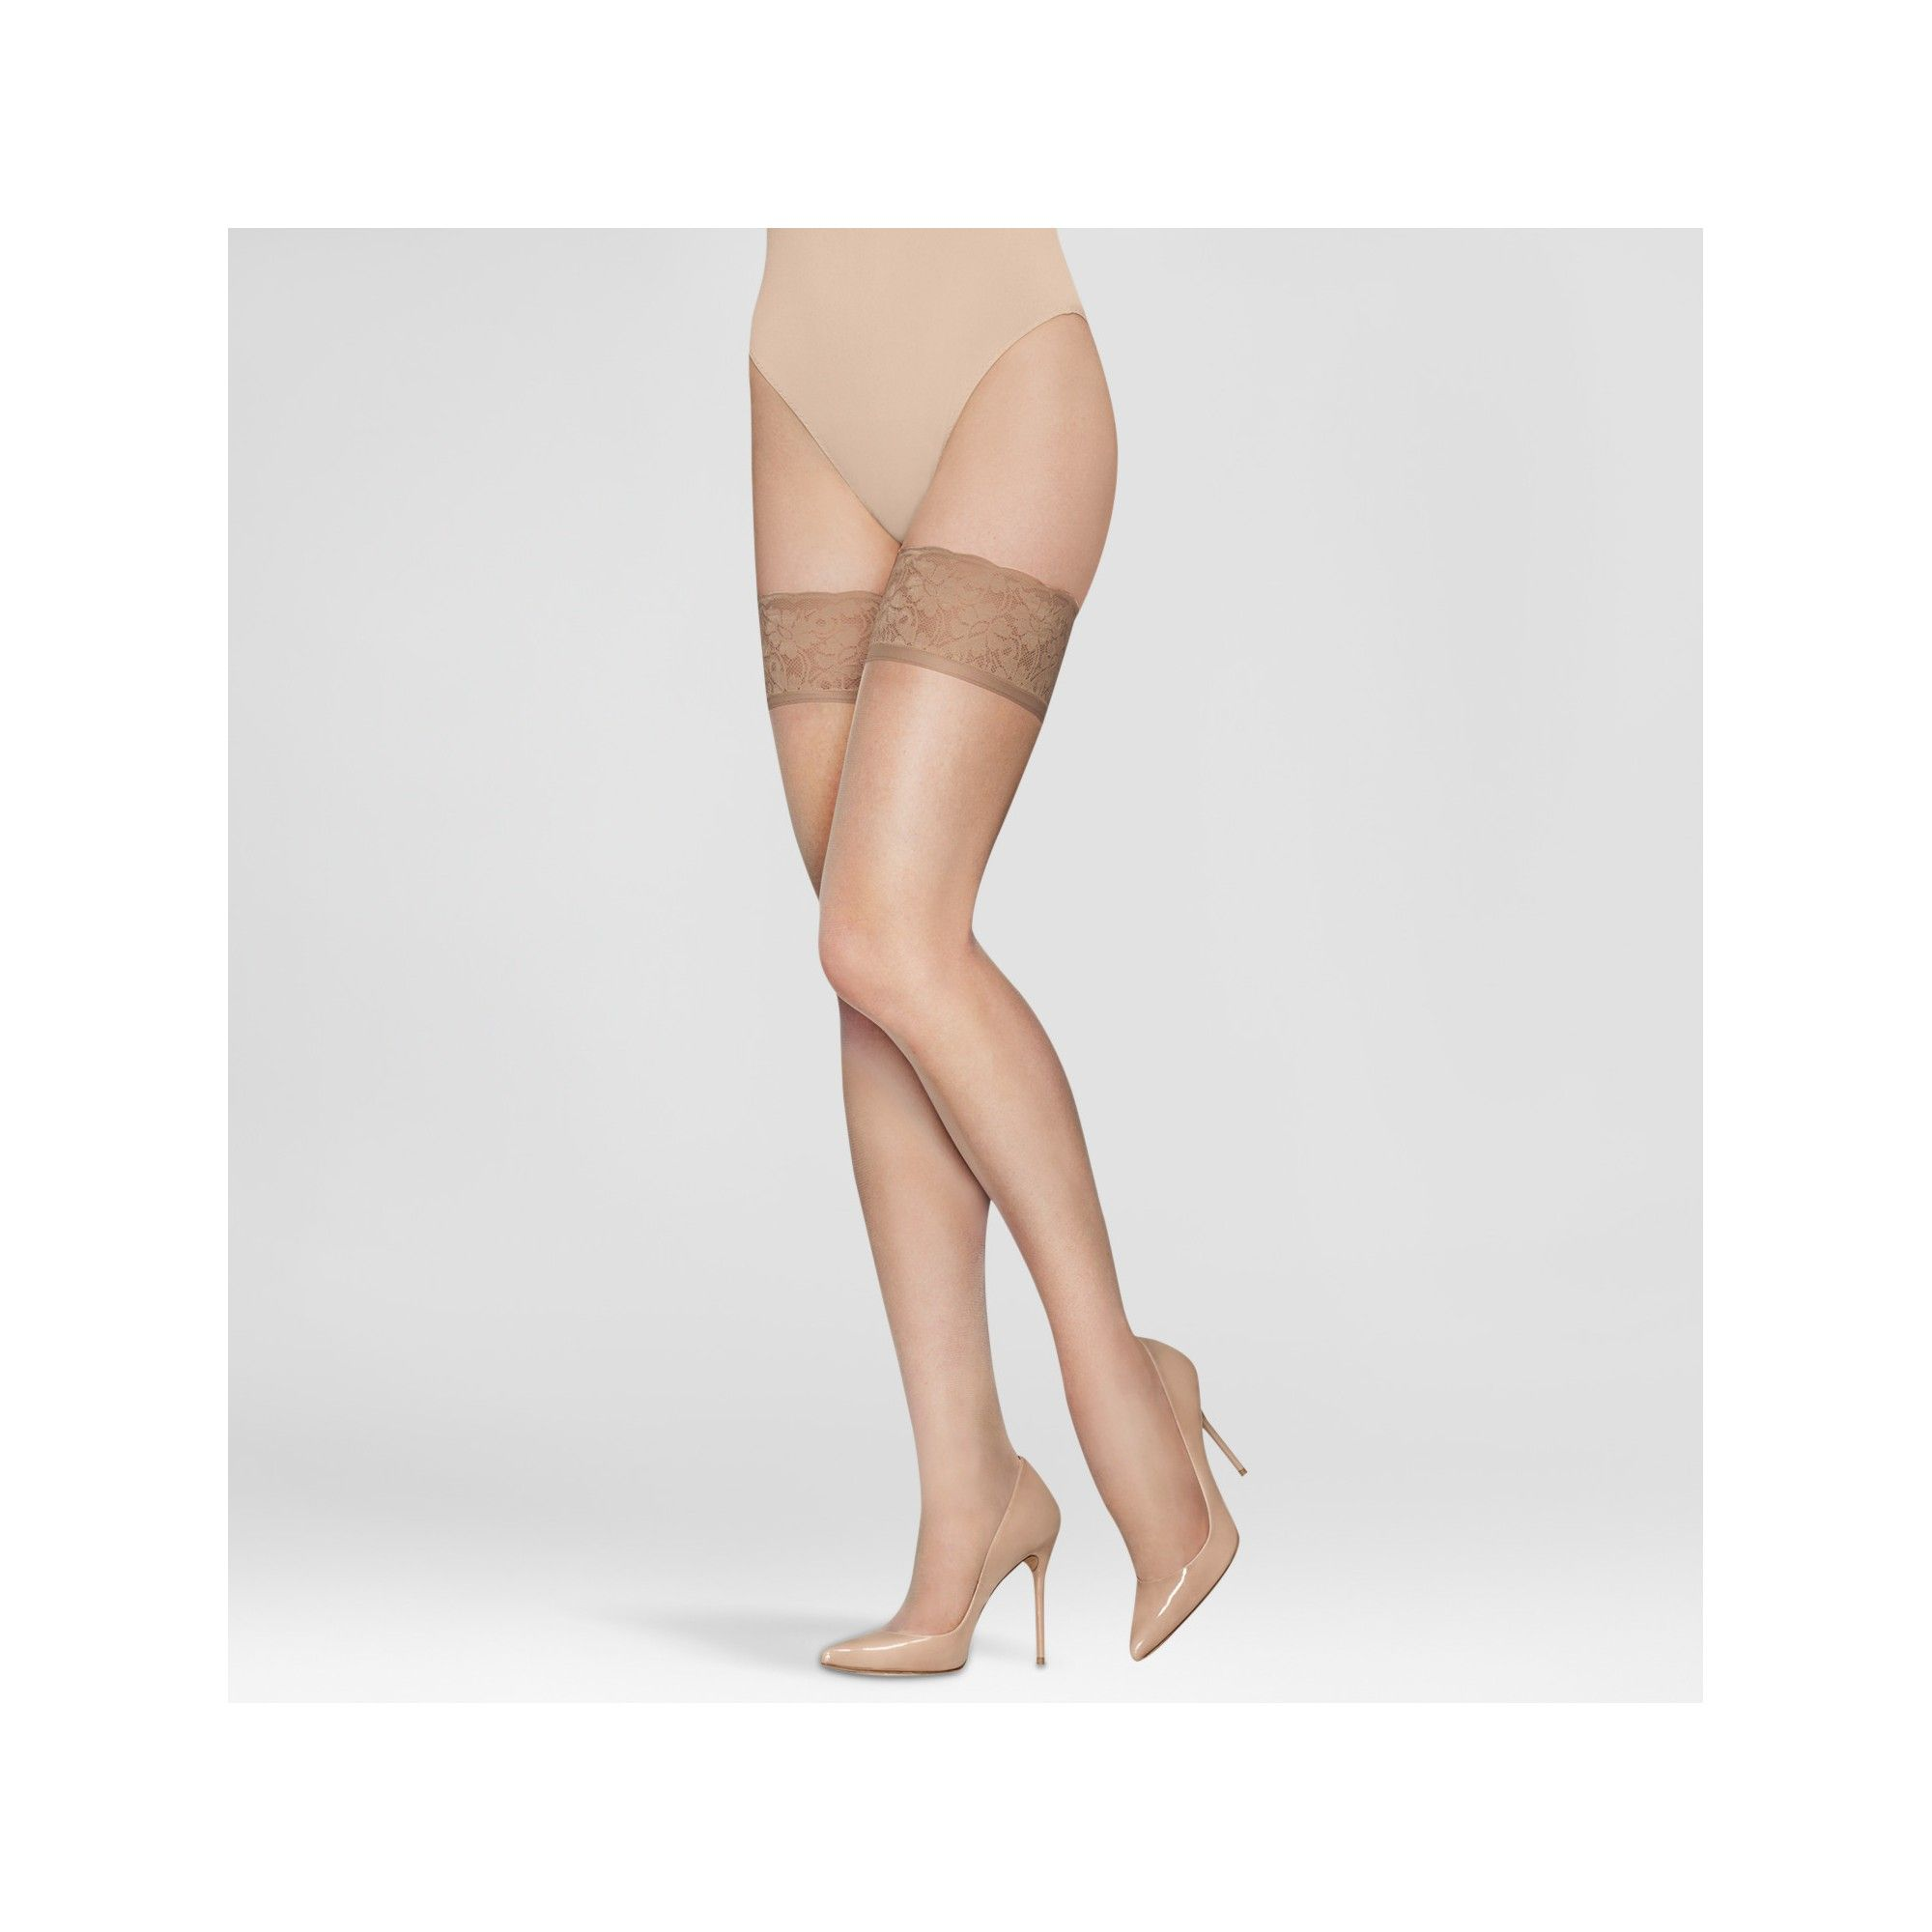 97cc88f43 Hanes Solutions Women s Sheer Thigh Highs - Beige L in 2019 ...